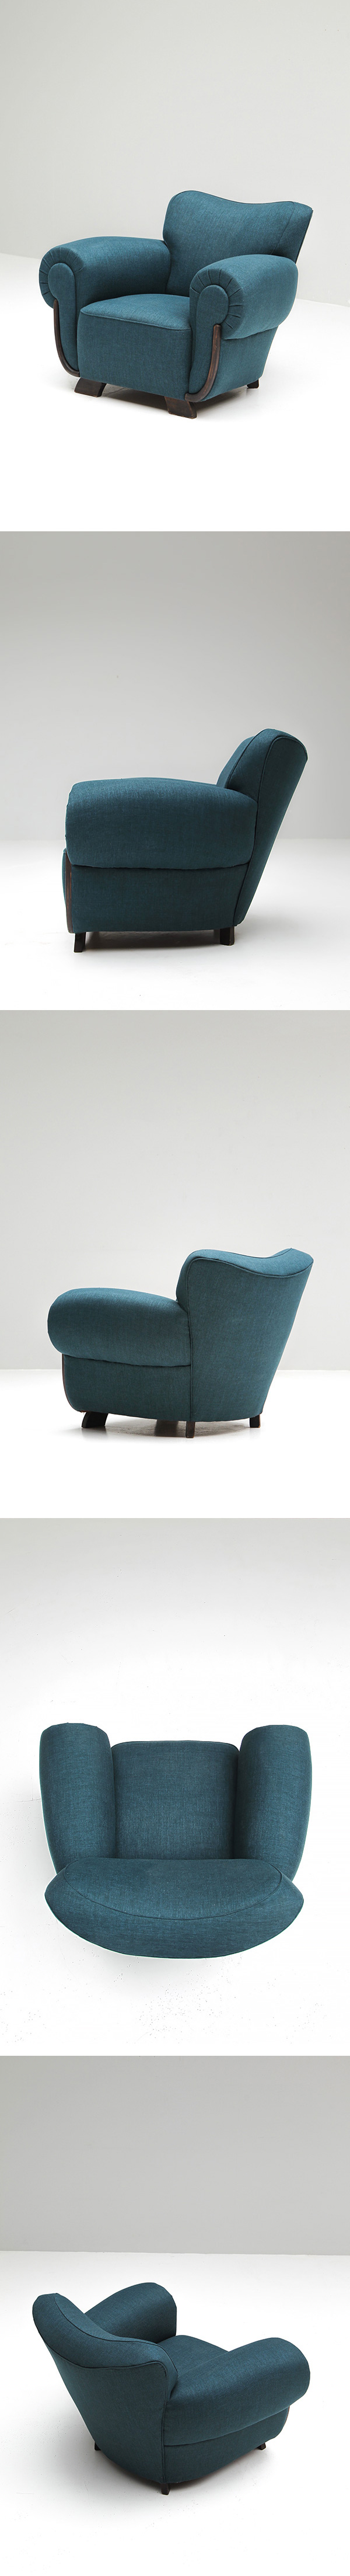 Belgium, Art-Deco, club chair, 1940s